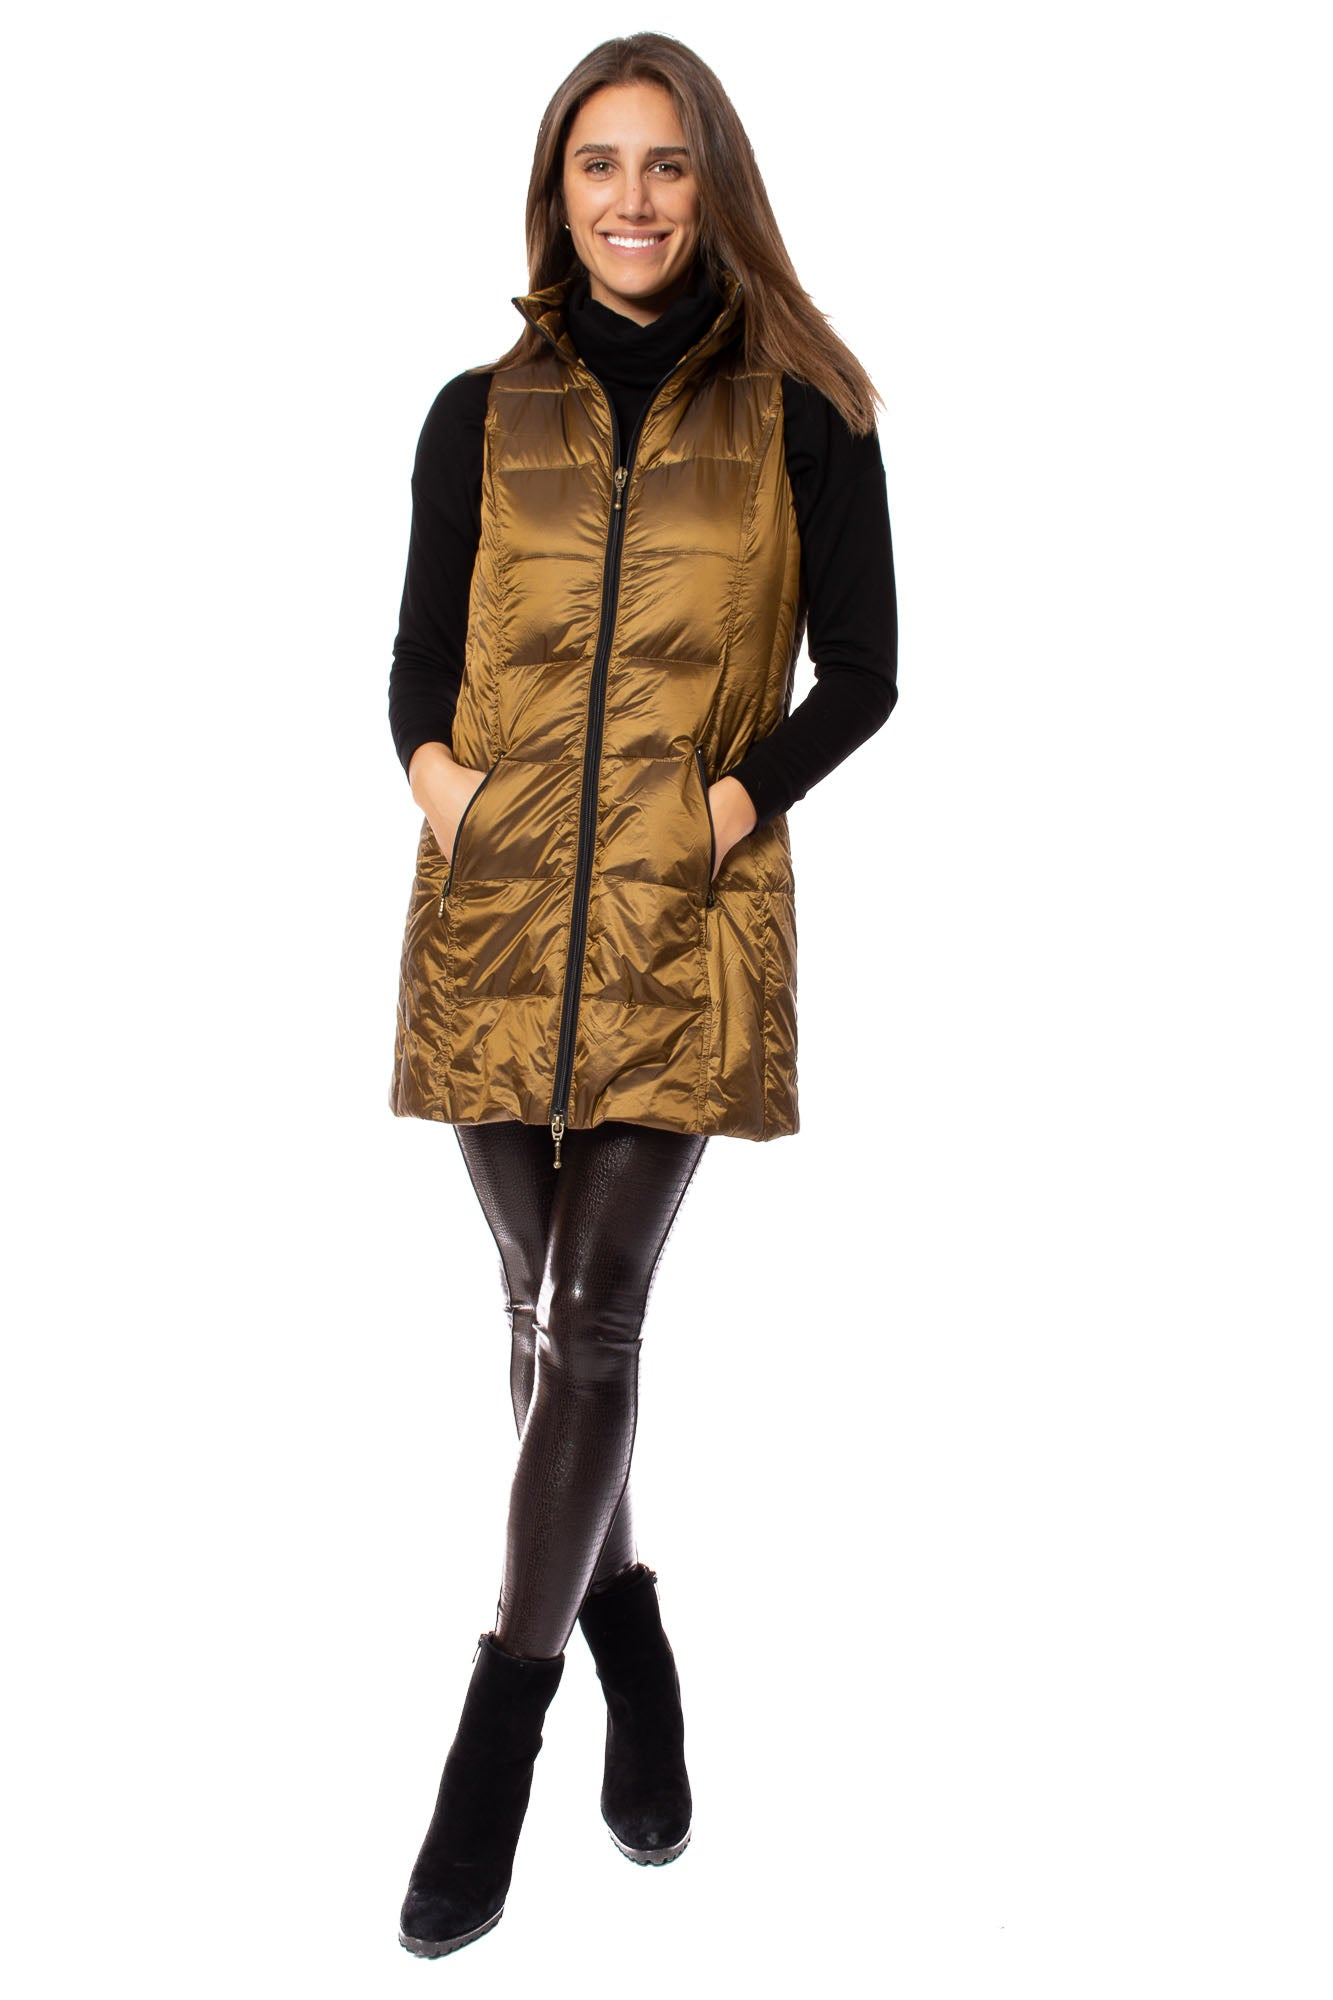 Anorak - Long Puffer Down Vest (50171IN, Bronze)